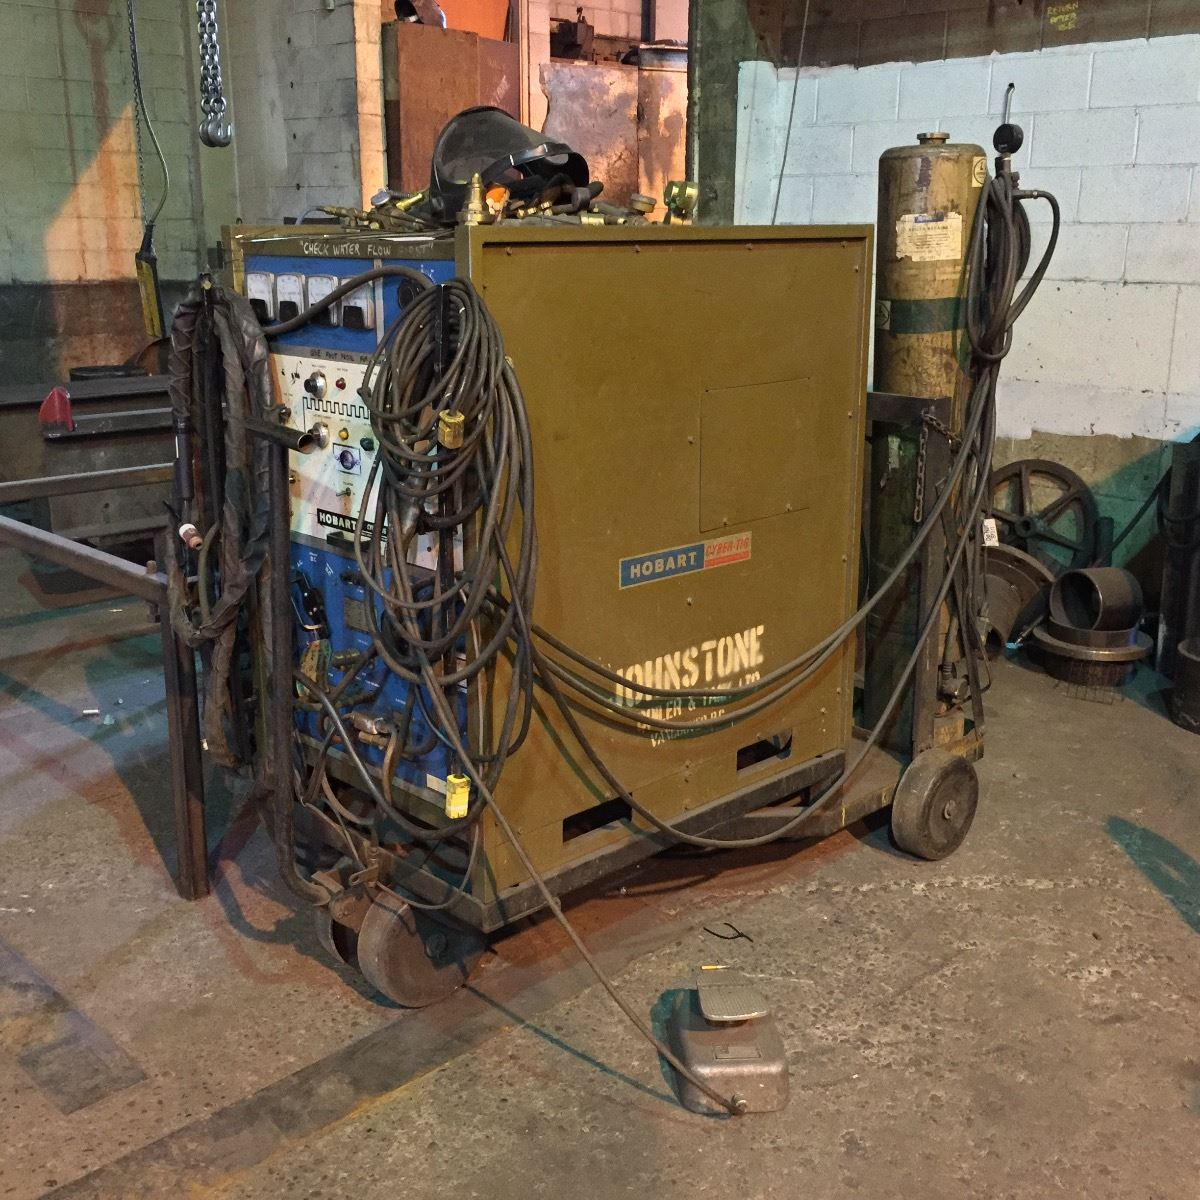 hobart cyber tig model c7 300 tig arc welder w foot controls and cables rh liveauctionworld com Old Miller TIG Hobart Cyber TIG 120